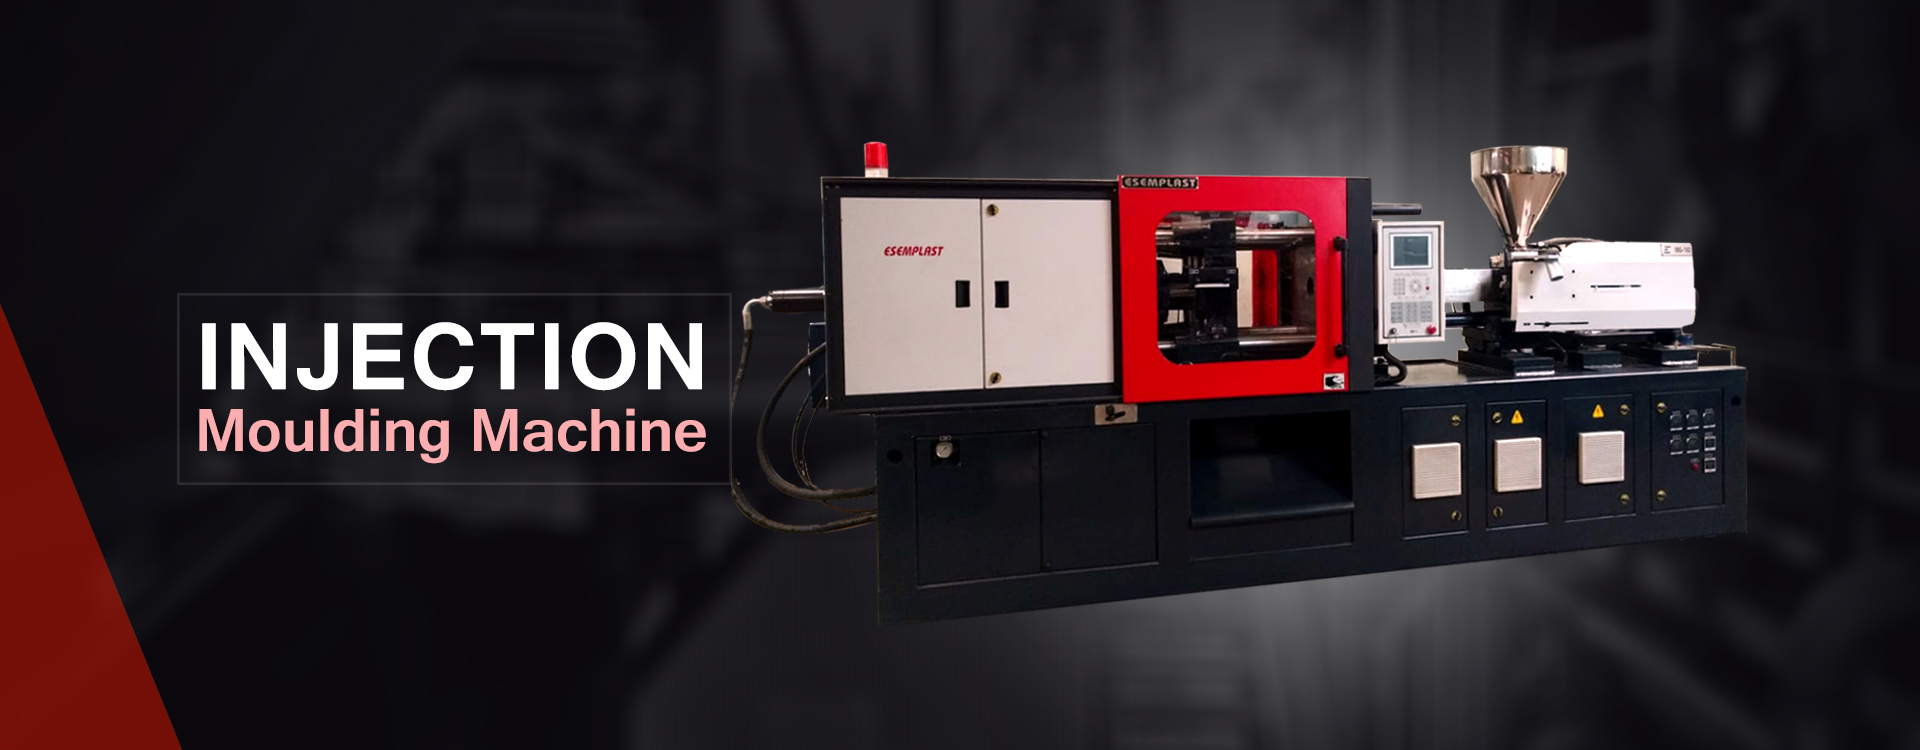 Injection Moulding Machine, Plastic, Precision Injection